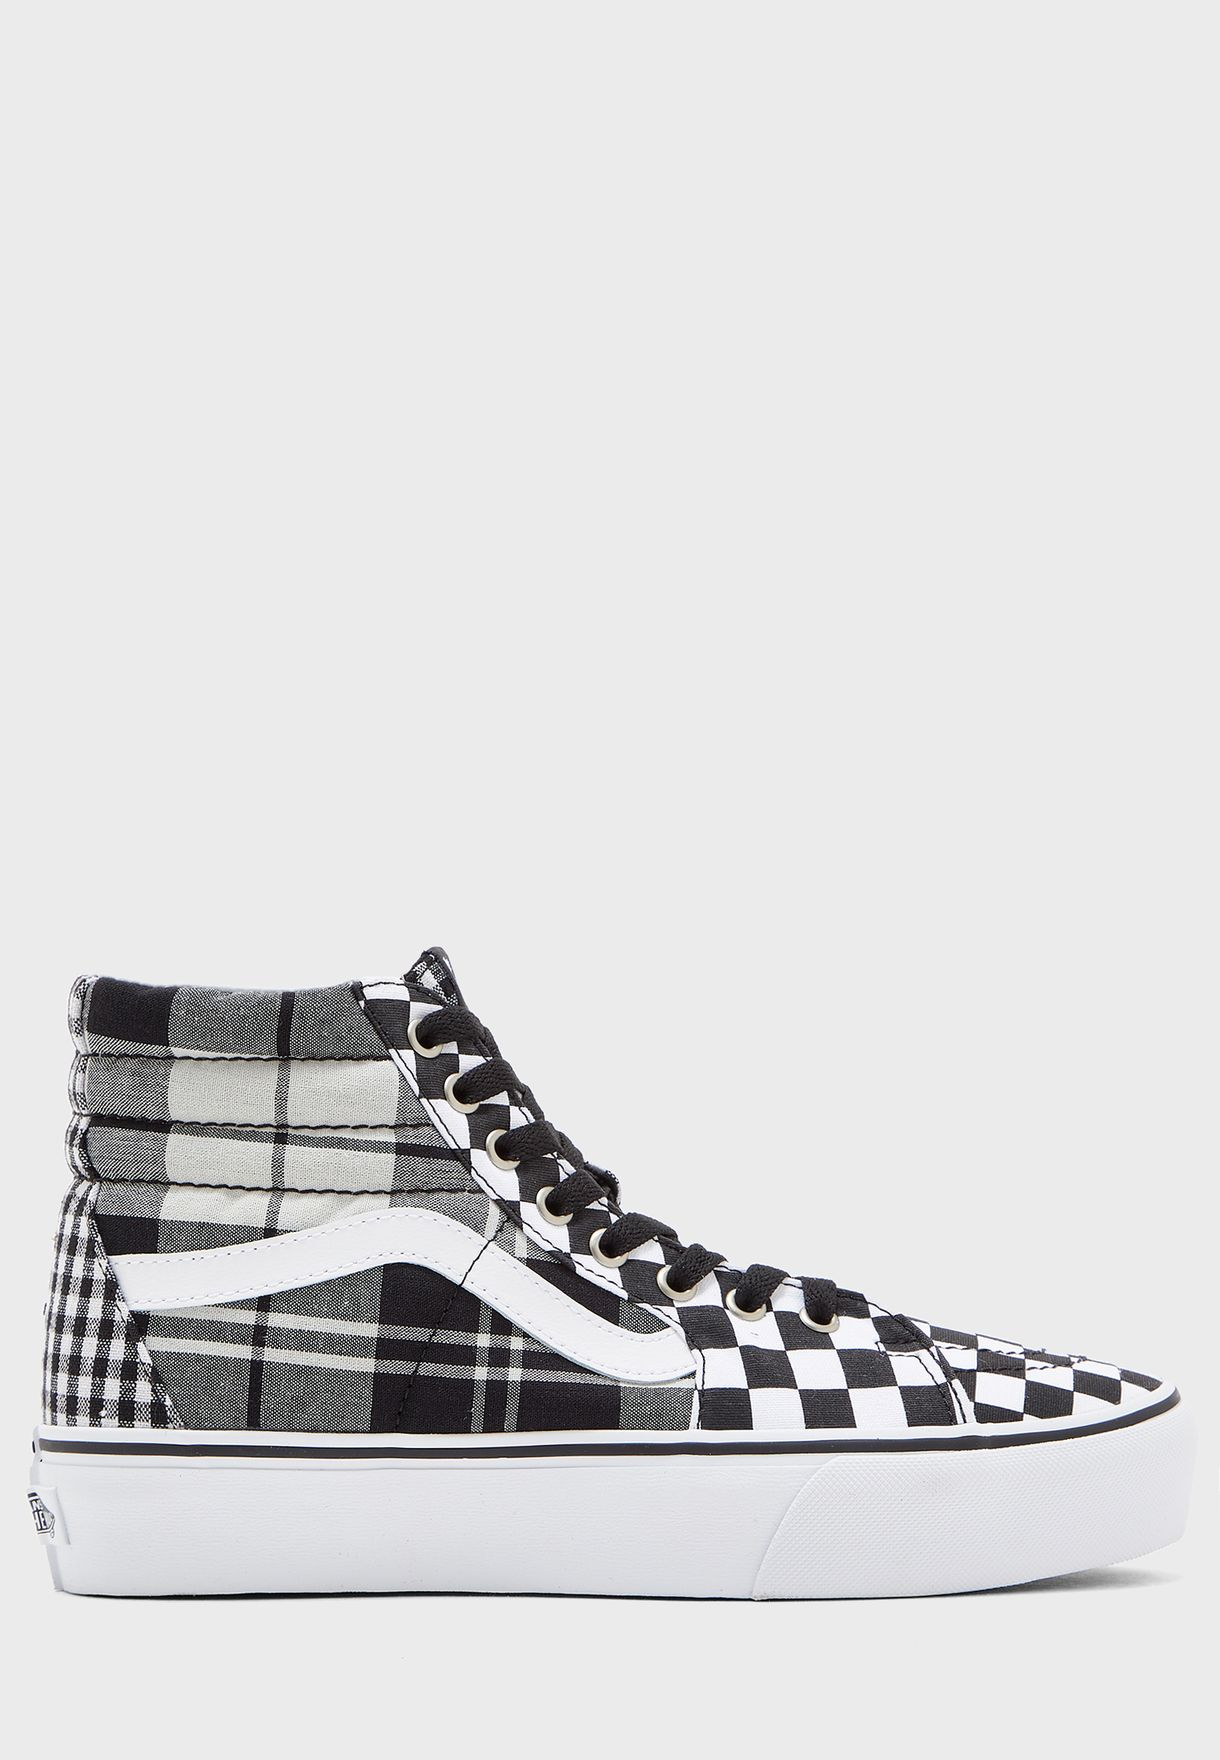 Plaid Checkerboard SK8-Hi Platform 2.0